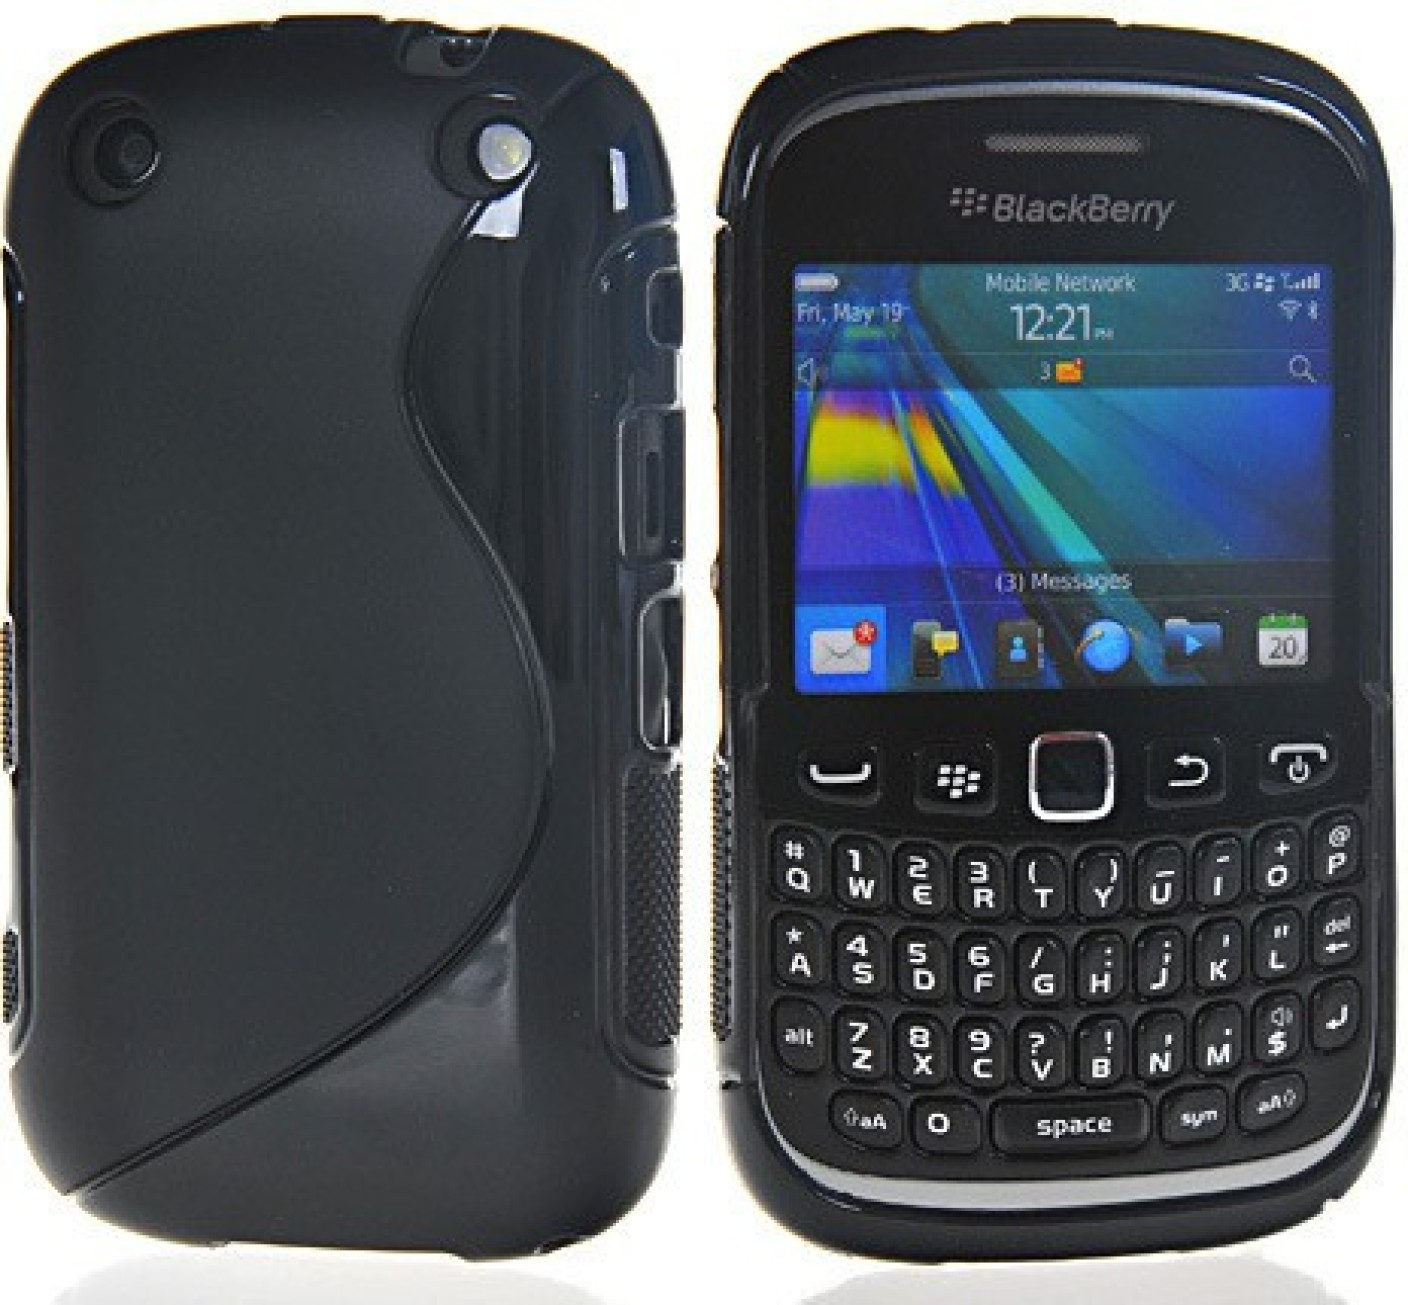 Icod9 Back Cover for Blackberry Curve 9220